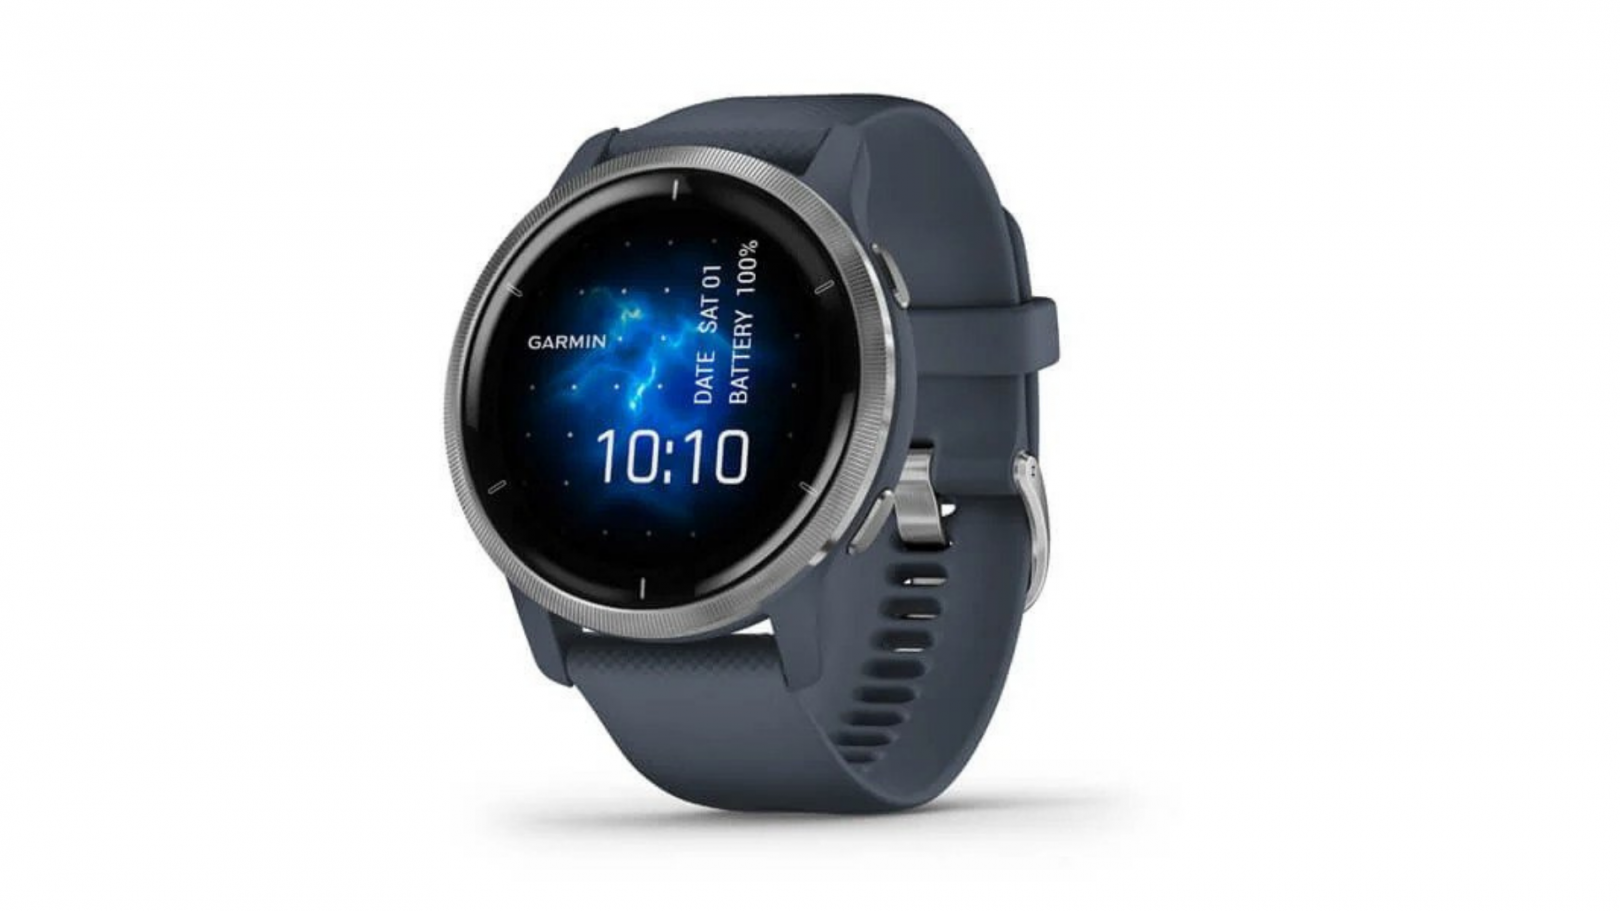 With on-device HIIT workouts, the Garmin Venu 2 could make gym classes obsolete